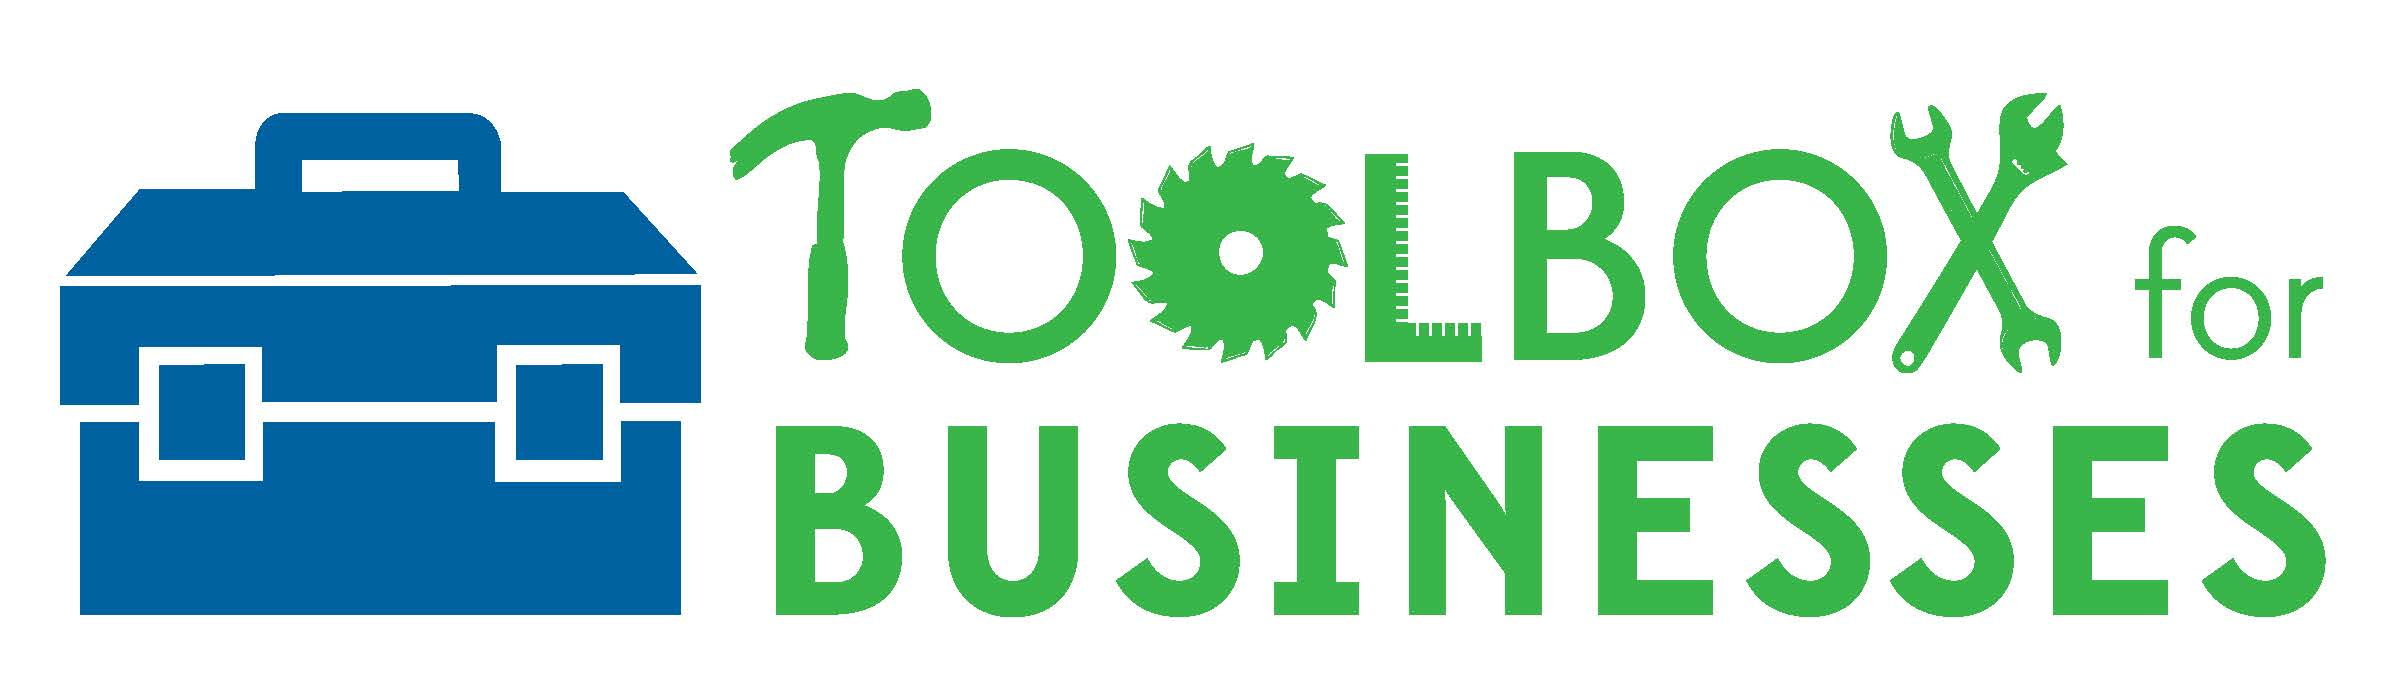 Toolbox for businesses logo